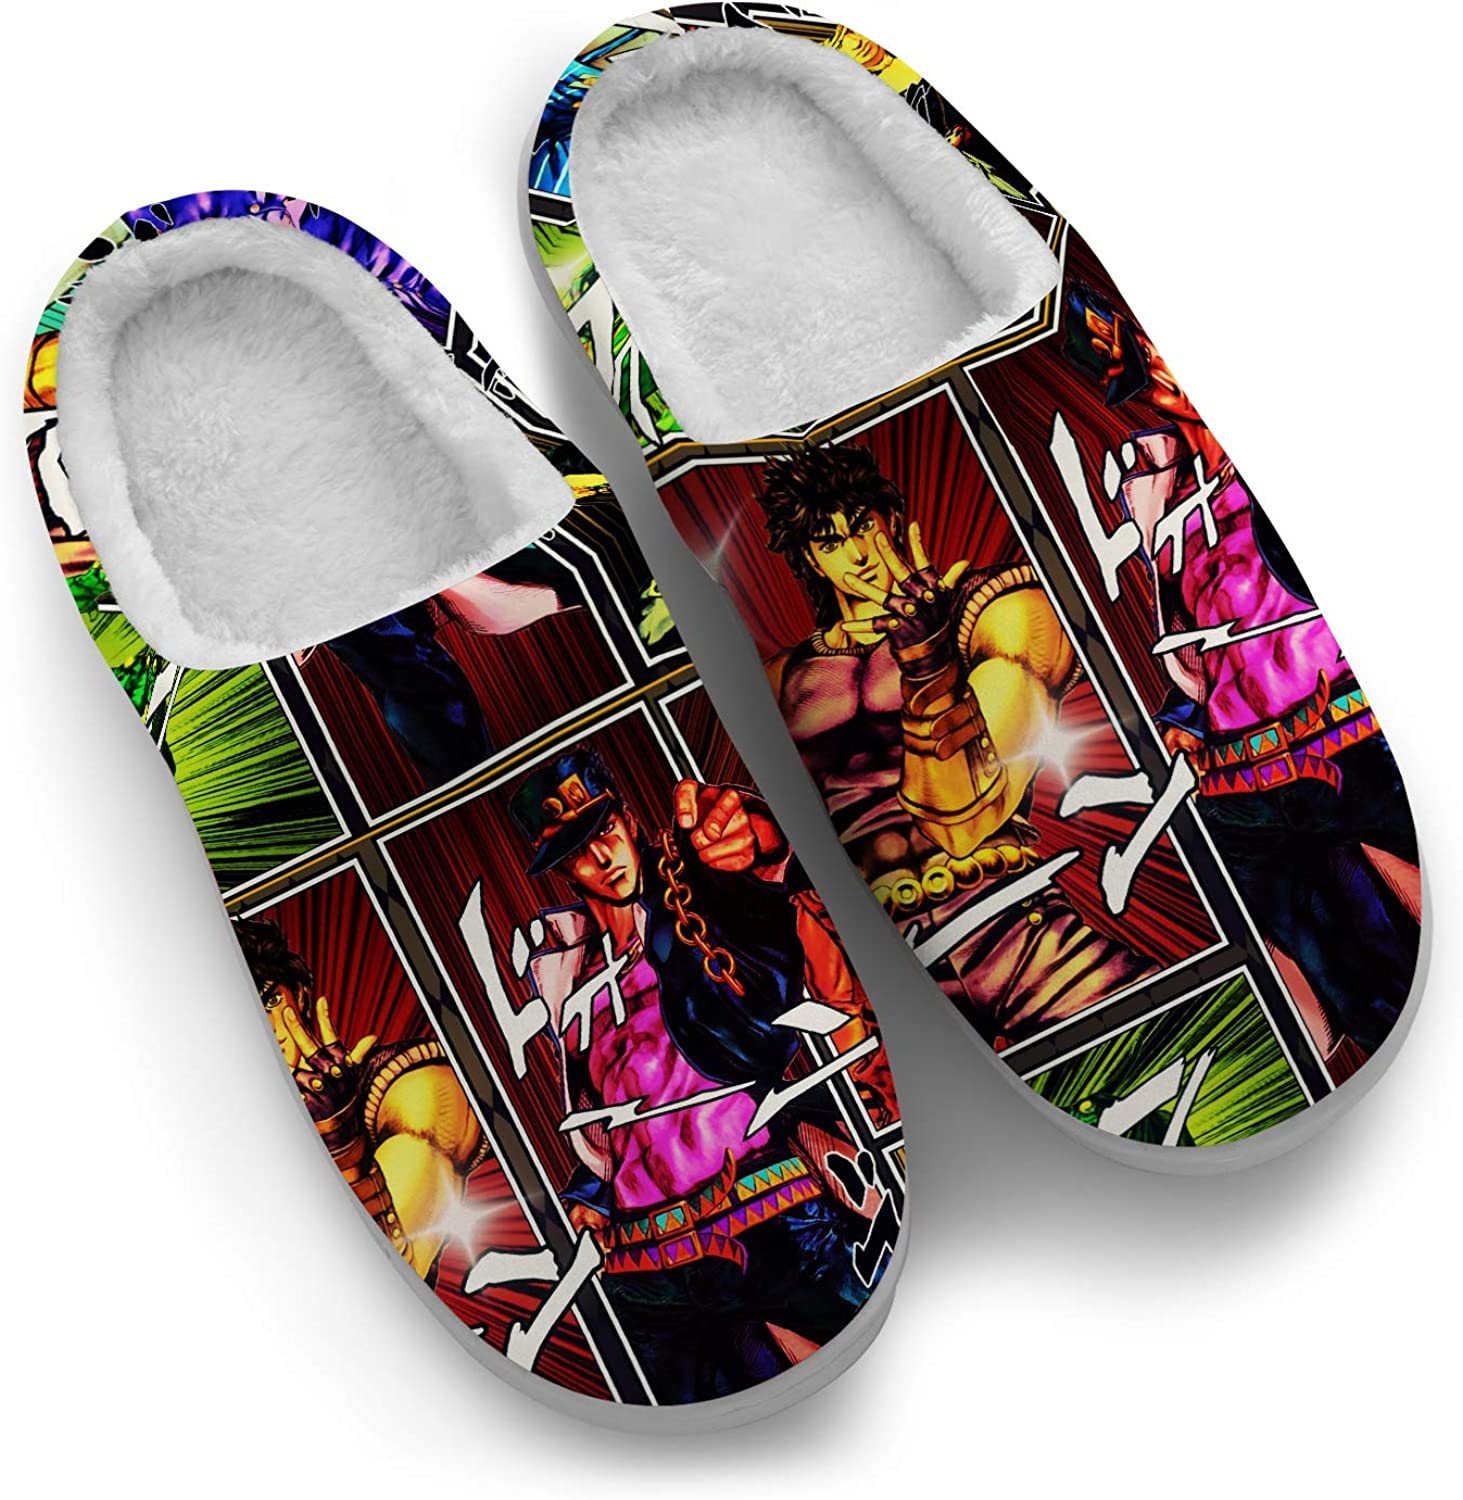 Japanese Anime Slipper for Men Women Max Free shipping anywhere in the nation 51% OFF Indoor Ultra Ou Soft Custom